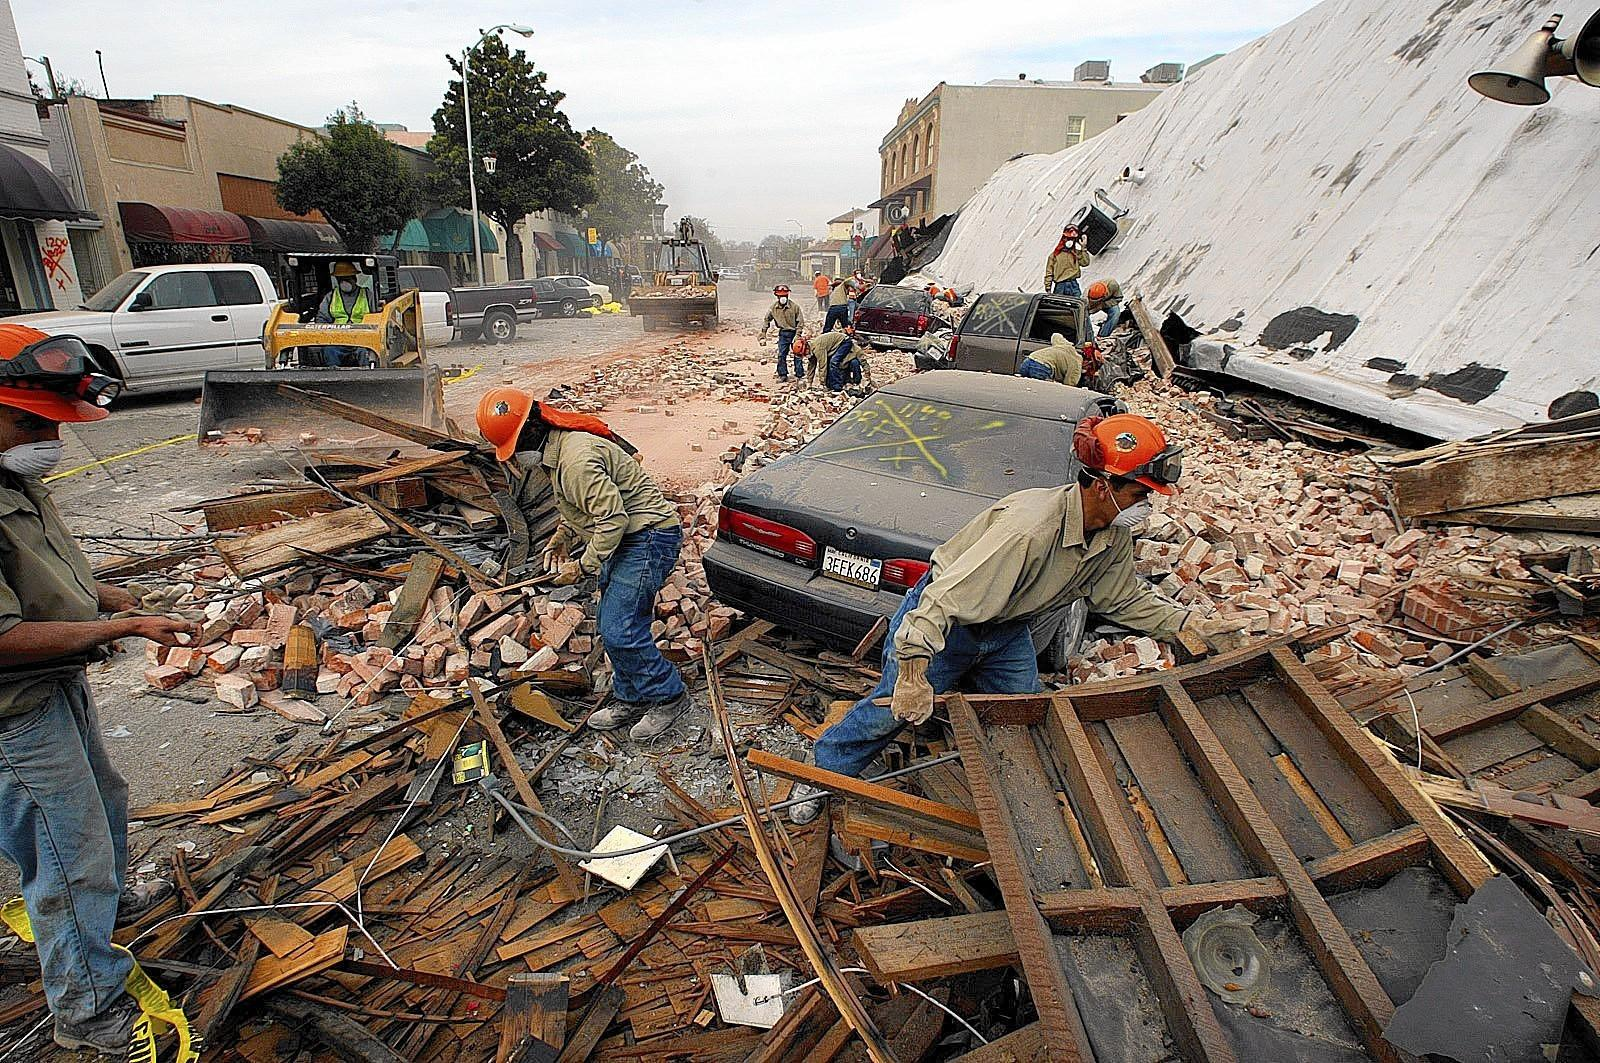 Rescue workers sift through debris in the wake of the 2003 Paso Robles earthquake. The families of the two women killed by falling bricks and plaster in an old building sued the property owners. A jury awarded the families nearly $2 million.